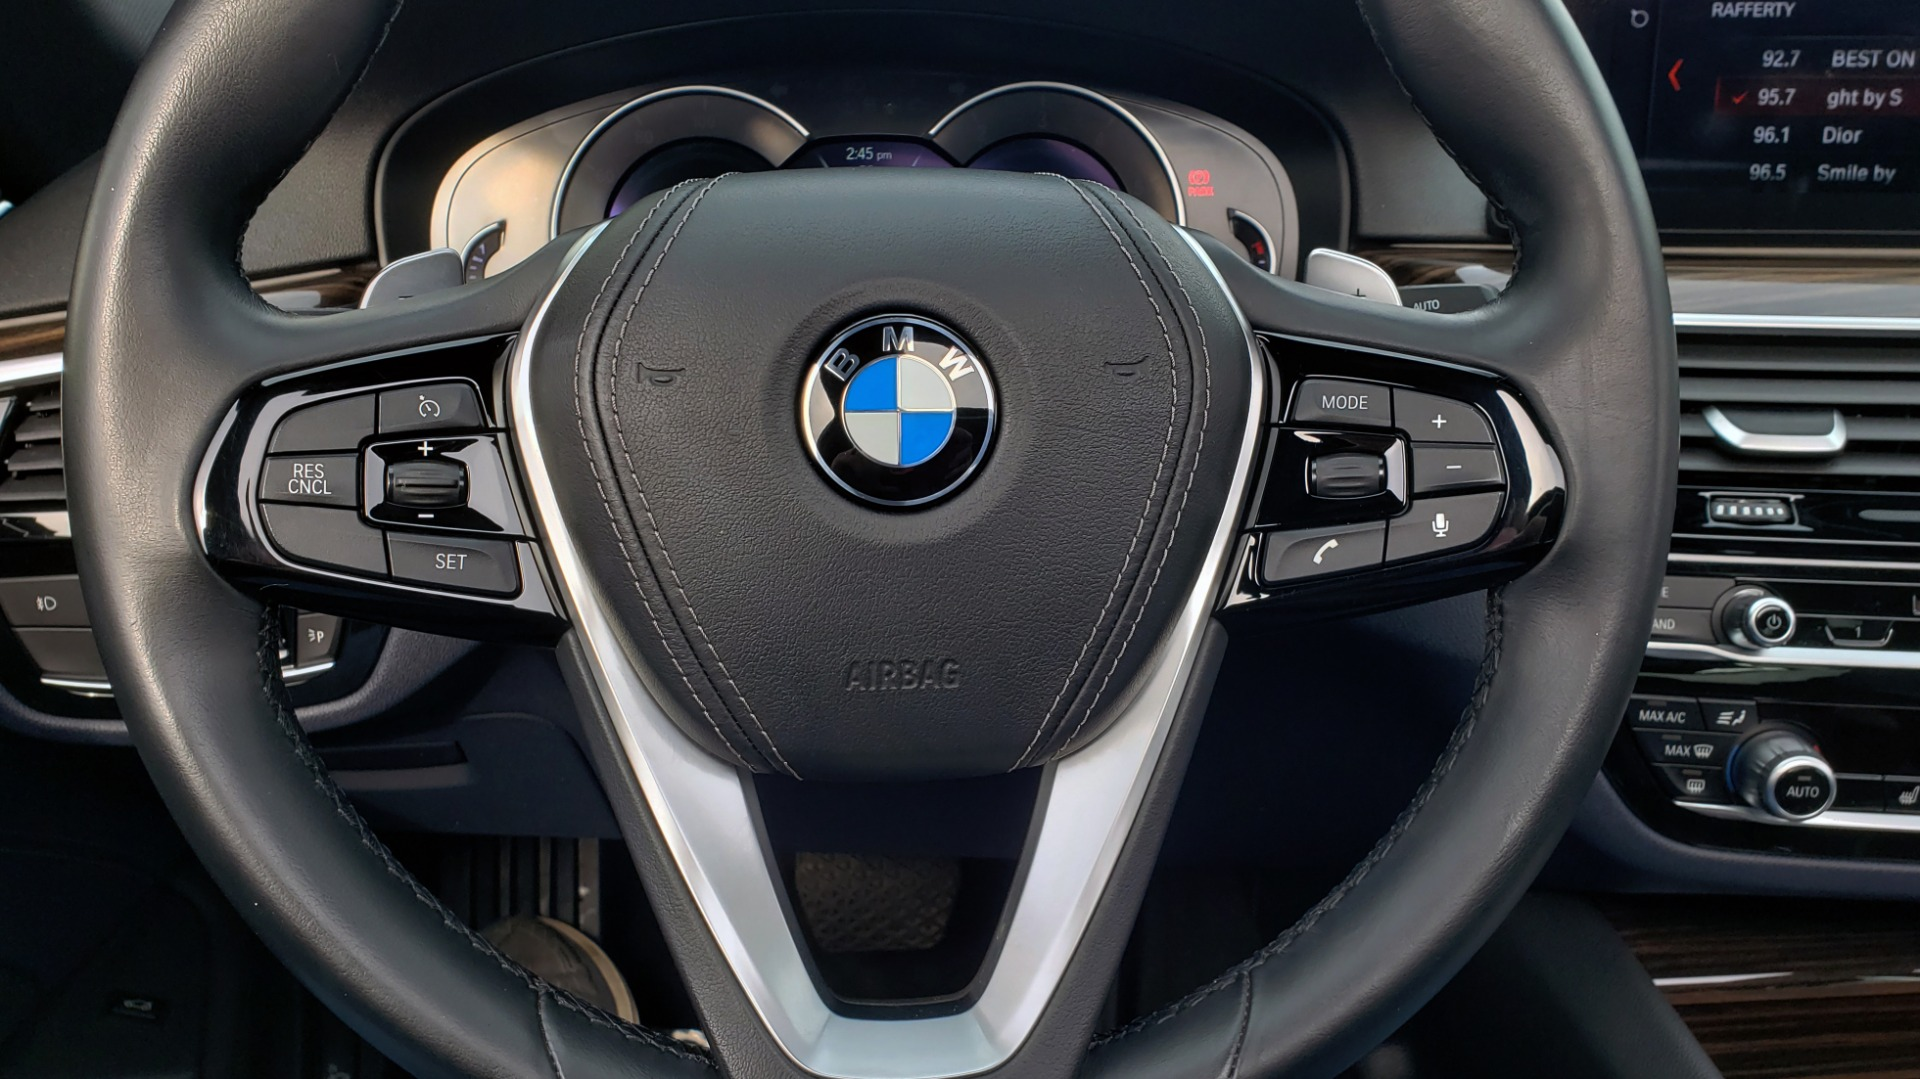 Used 2017 BMW 5 SERIES 530I PREMIUM / DRVR ASST PLUS / NAV / HUD / SUNROOF / REARVIEW for sale Sold at Formula Imports in Charlotte NC 28227 44